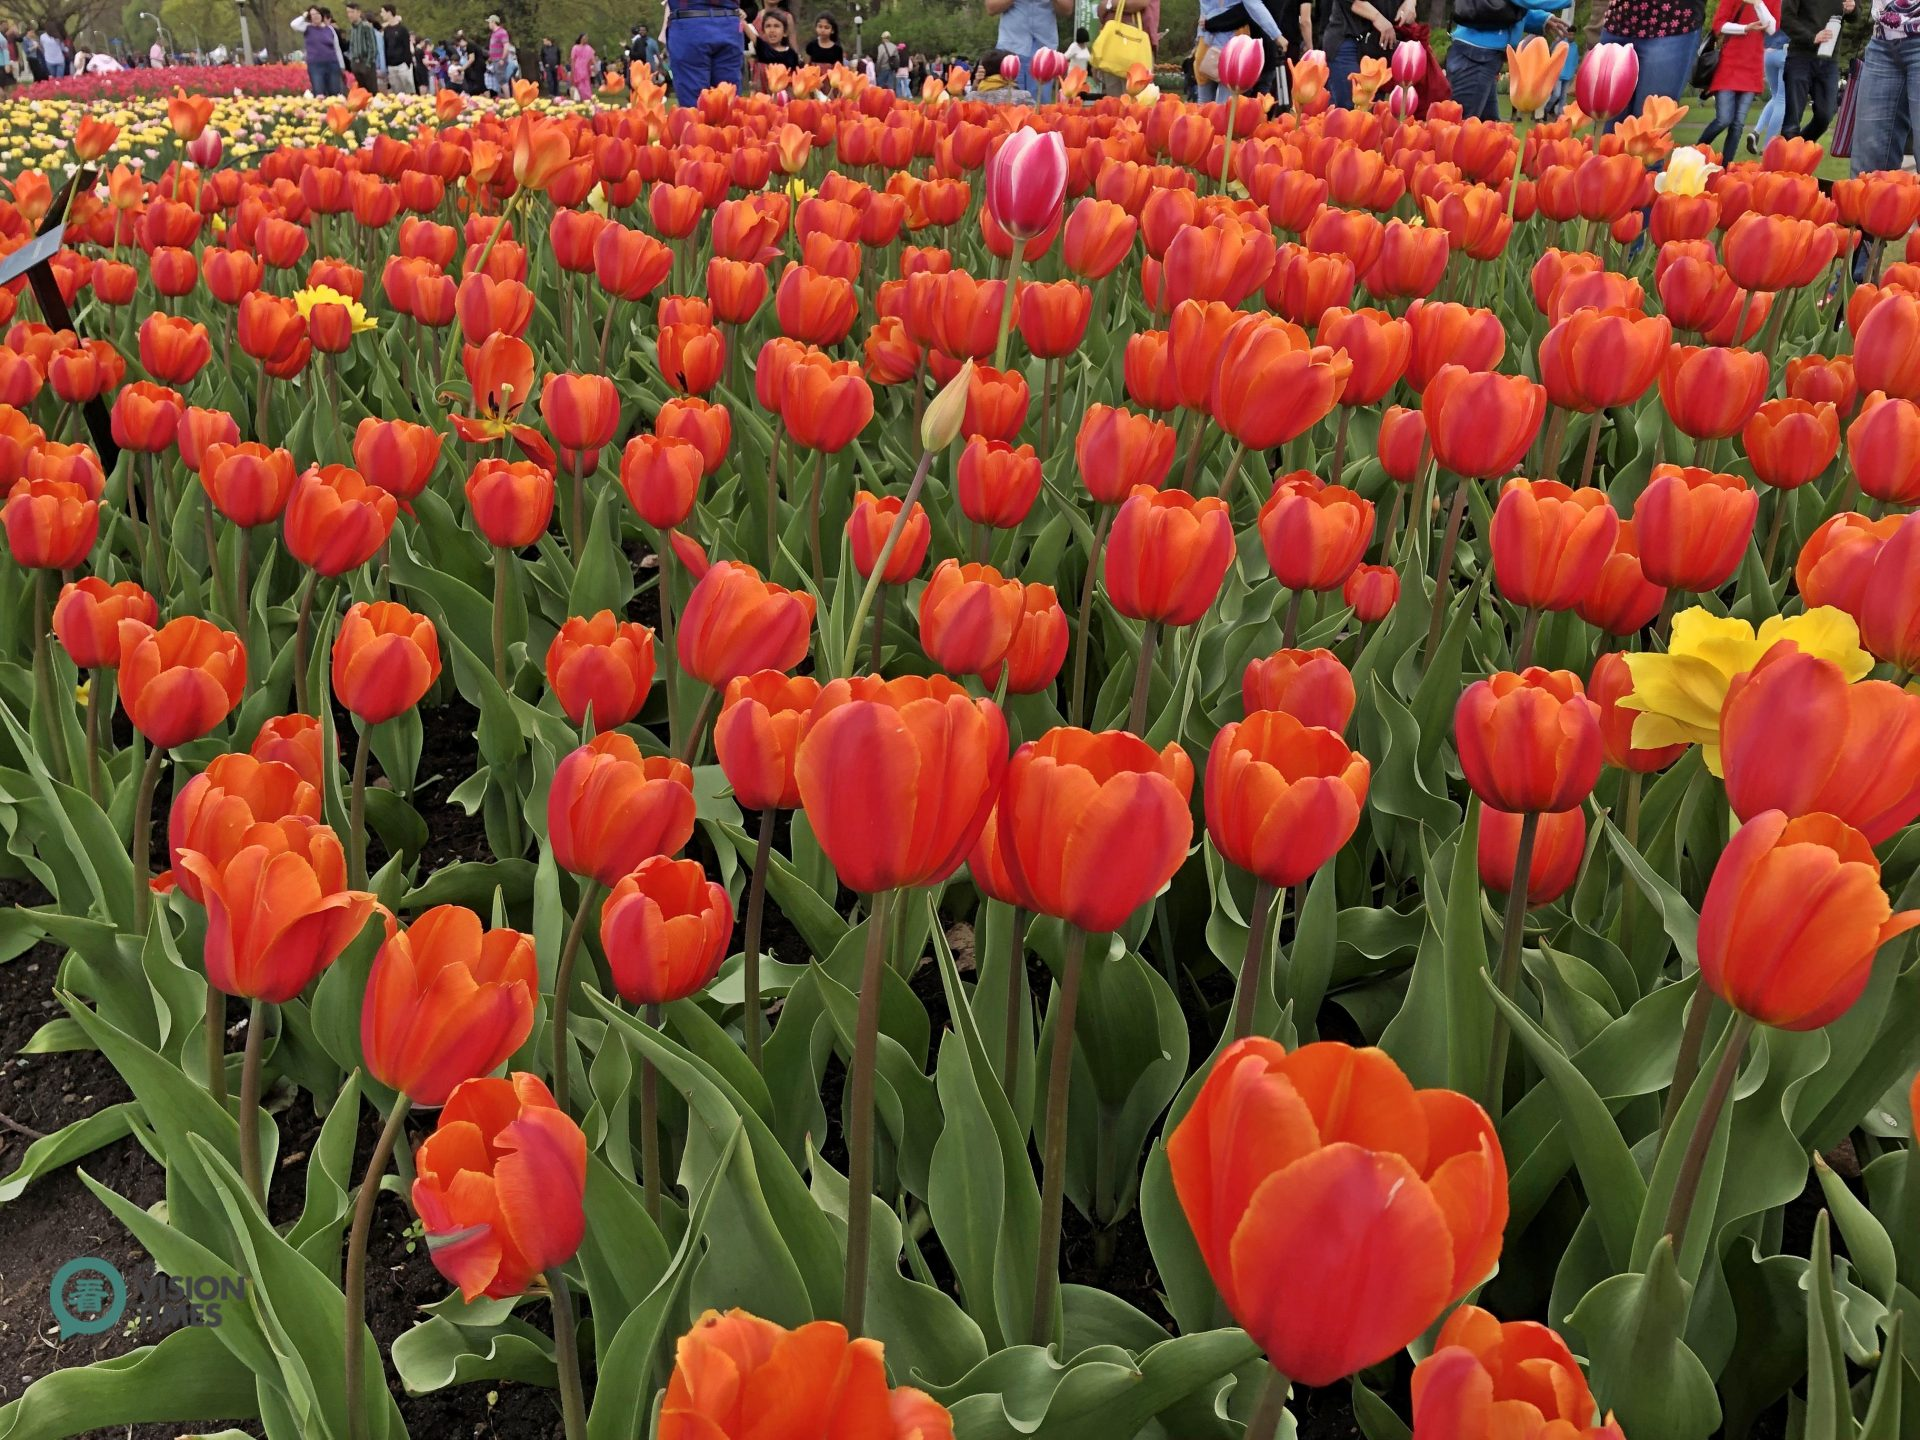 Visitors can appreciate millions of beautiful tulips in Canada's National Capital Region during this time of the year. (Image: Julia Fu / Vision Times)